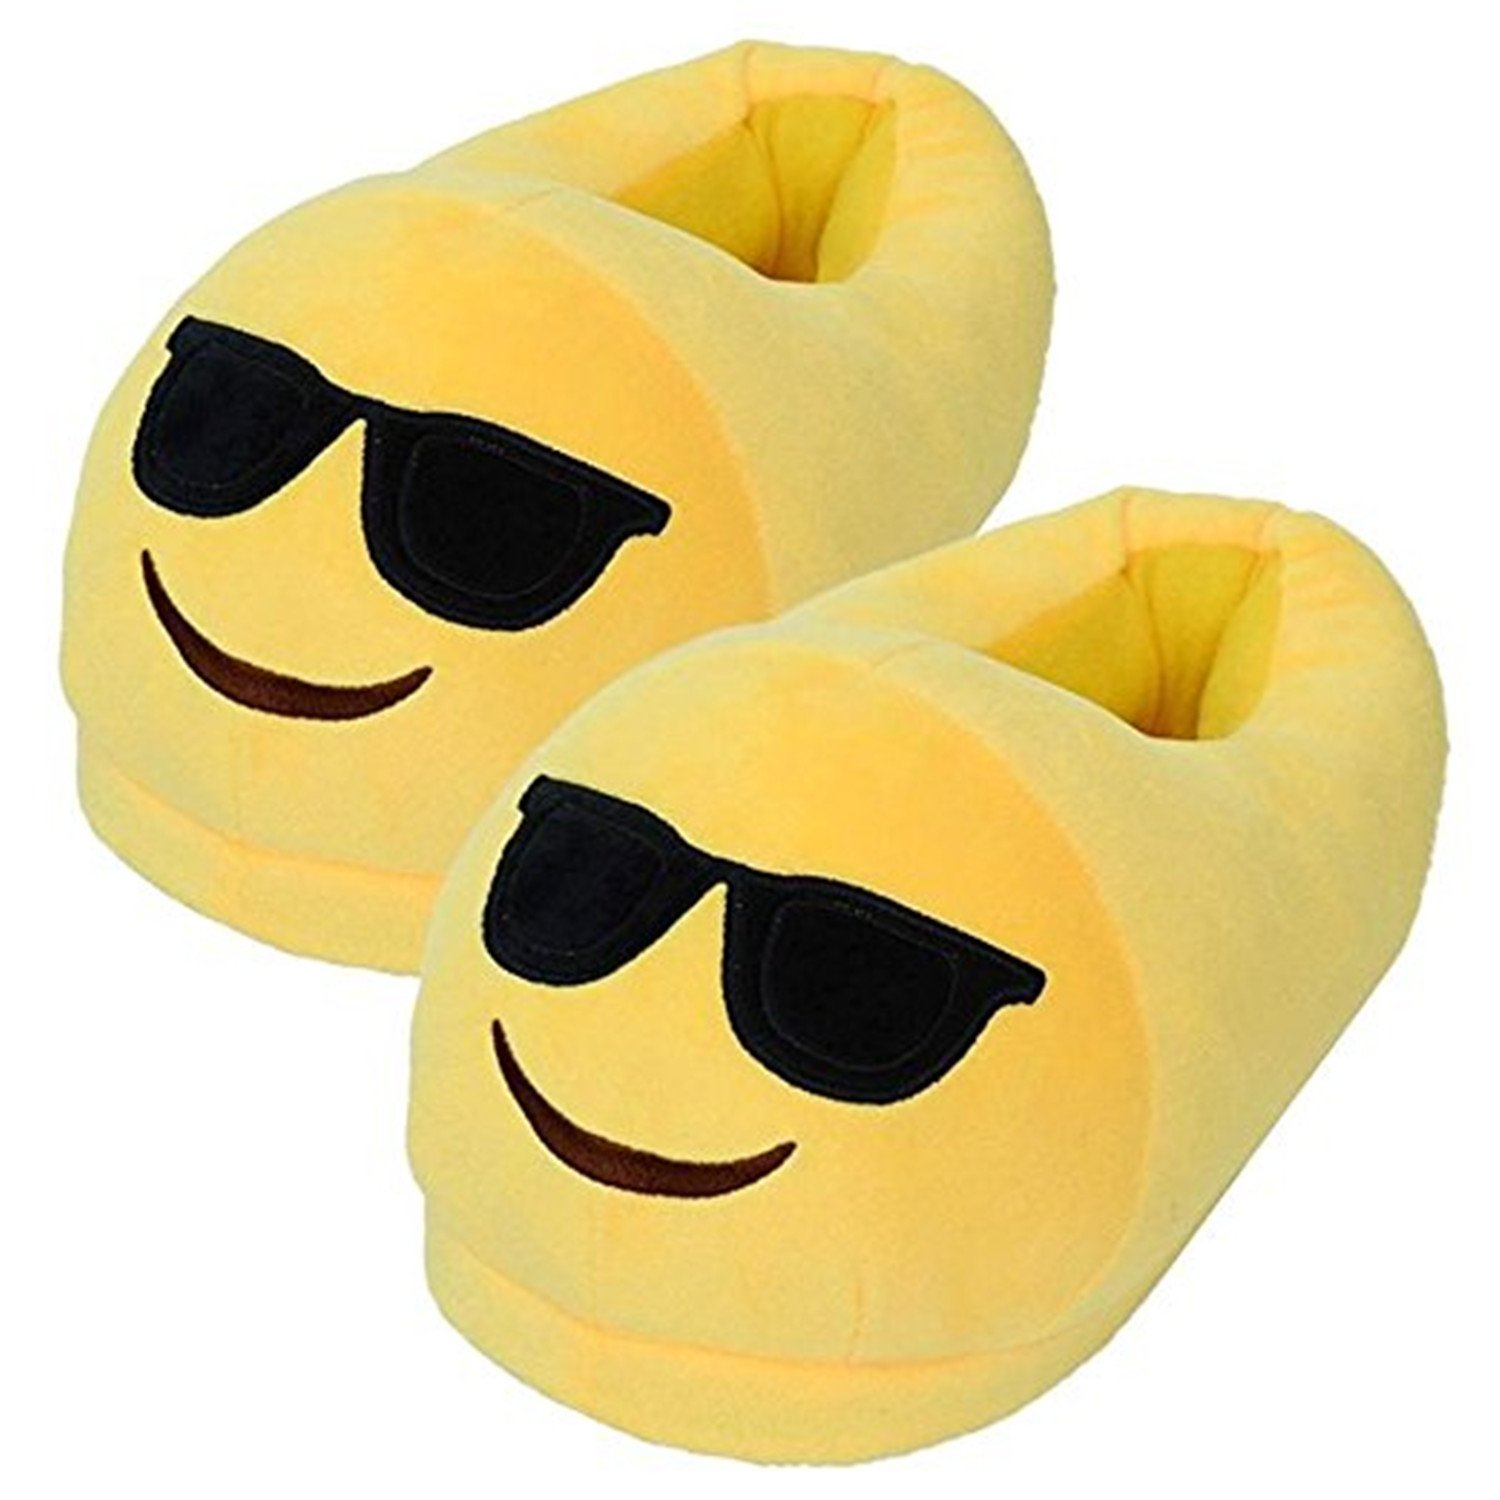 Thicken Warm Winter Slippers Emoji Slippers Unisex Cozy Funny Slippers Fluffy House Shoes (Sunglasses)